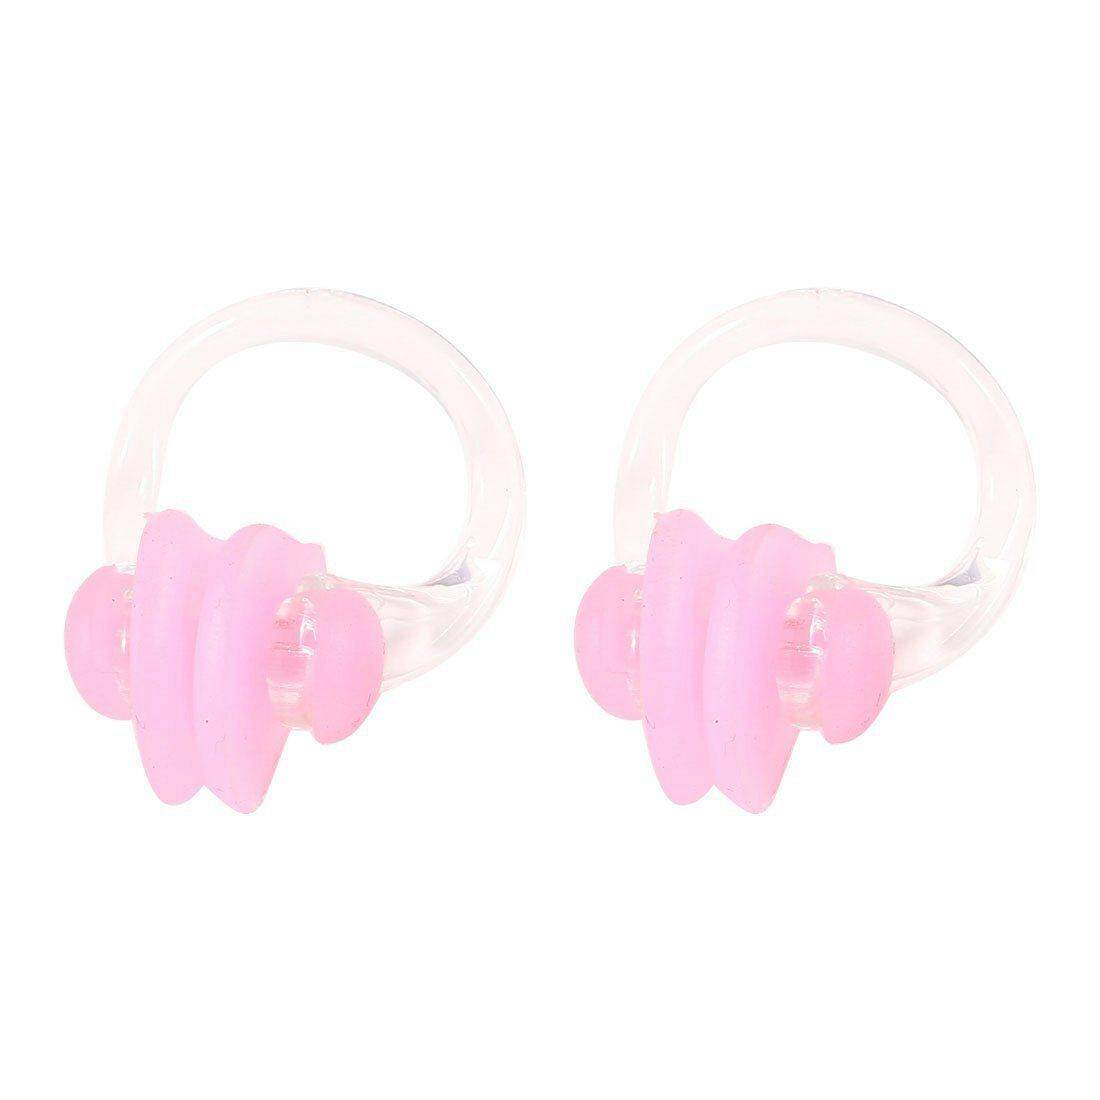 Protective Silicone Nose Clip Pink - 2 Pieces By Lefueletronic.